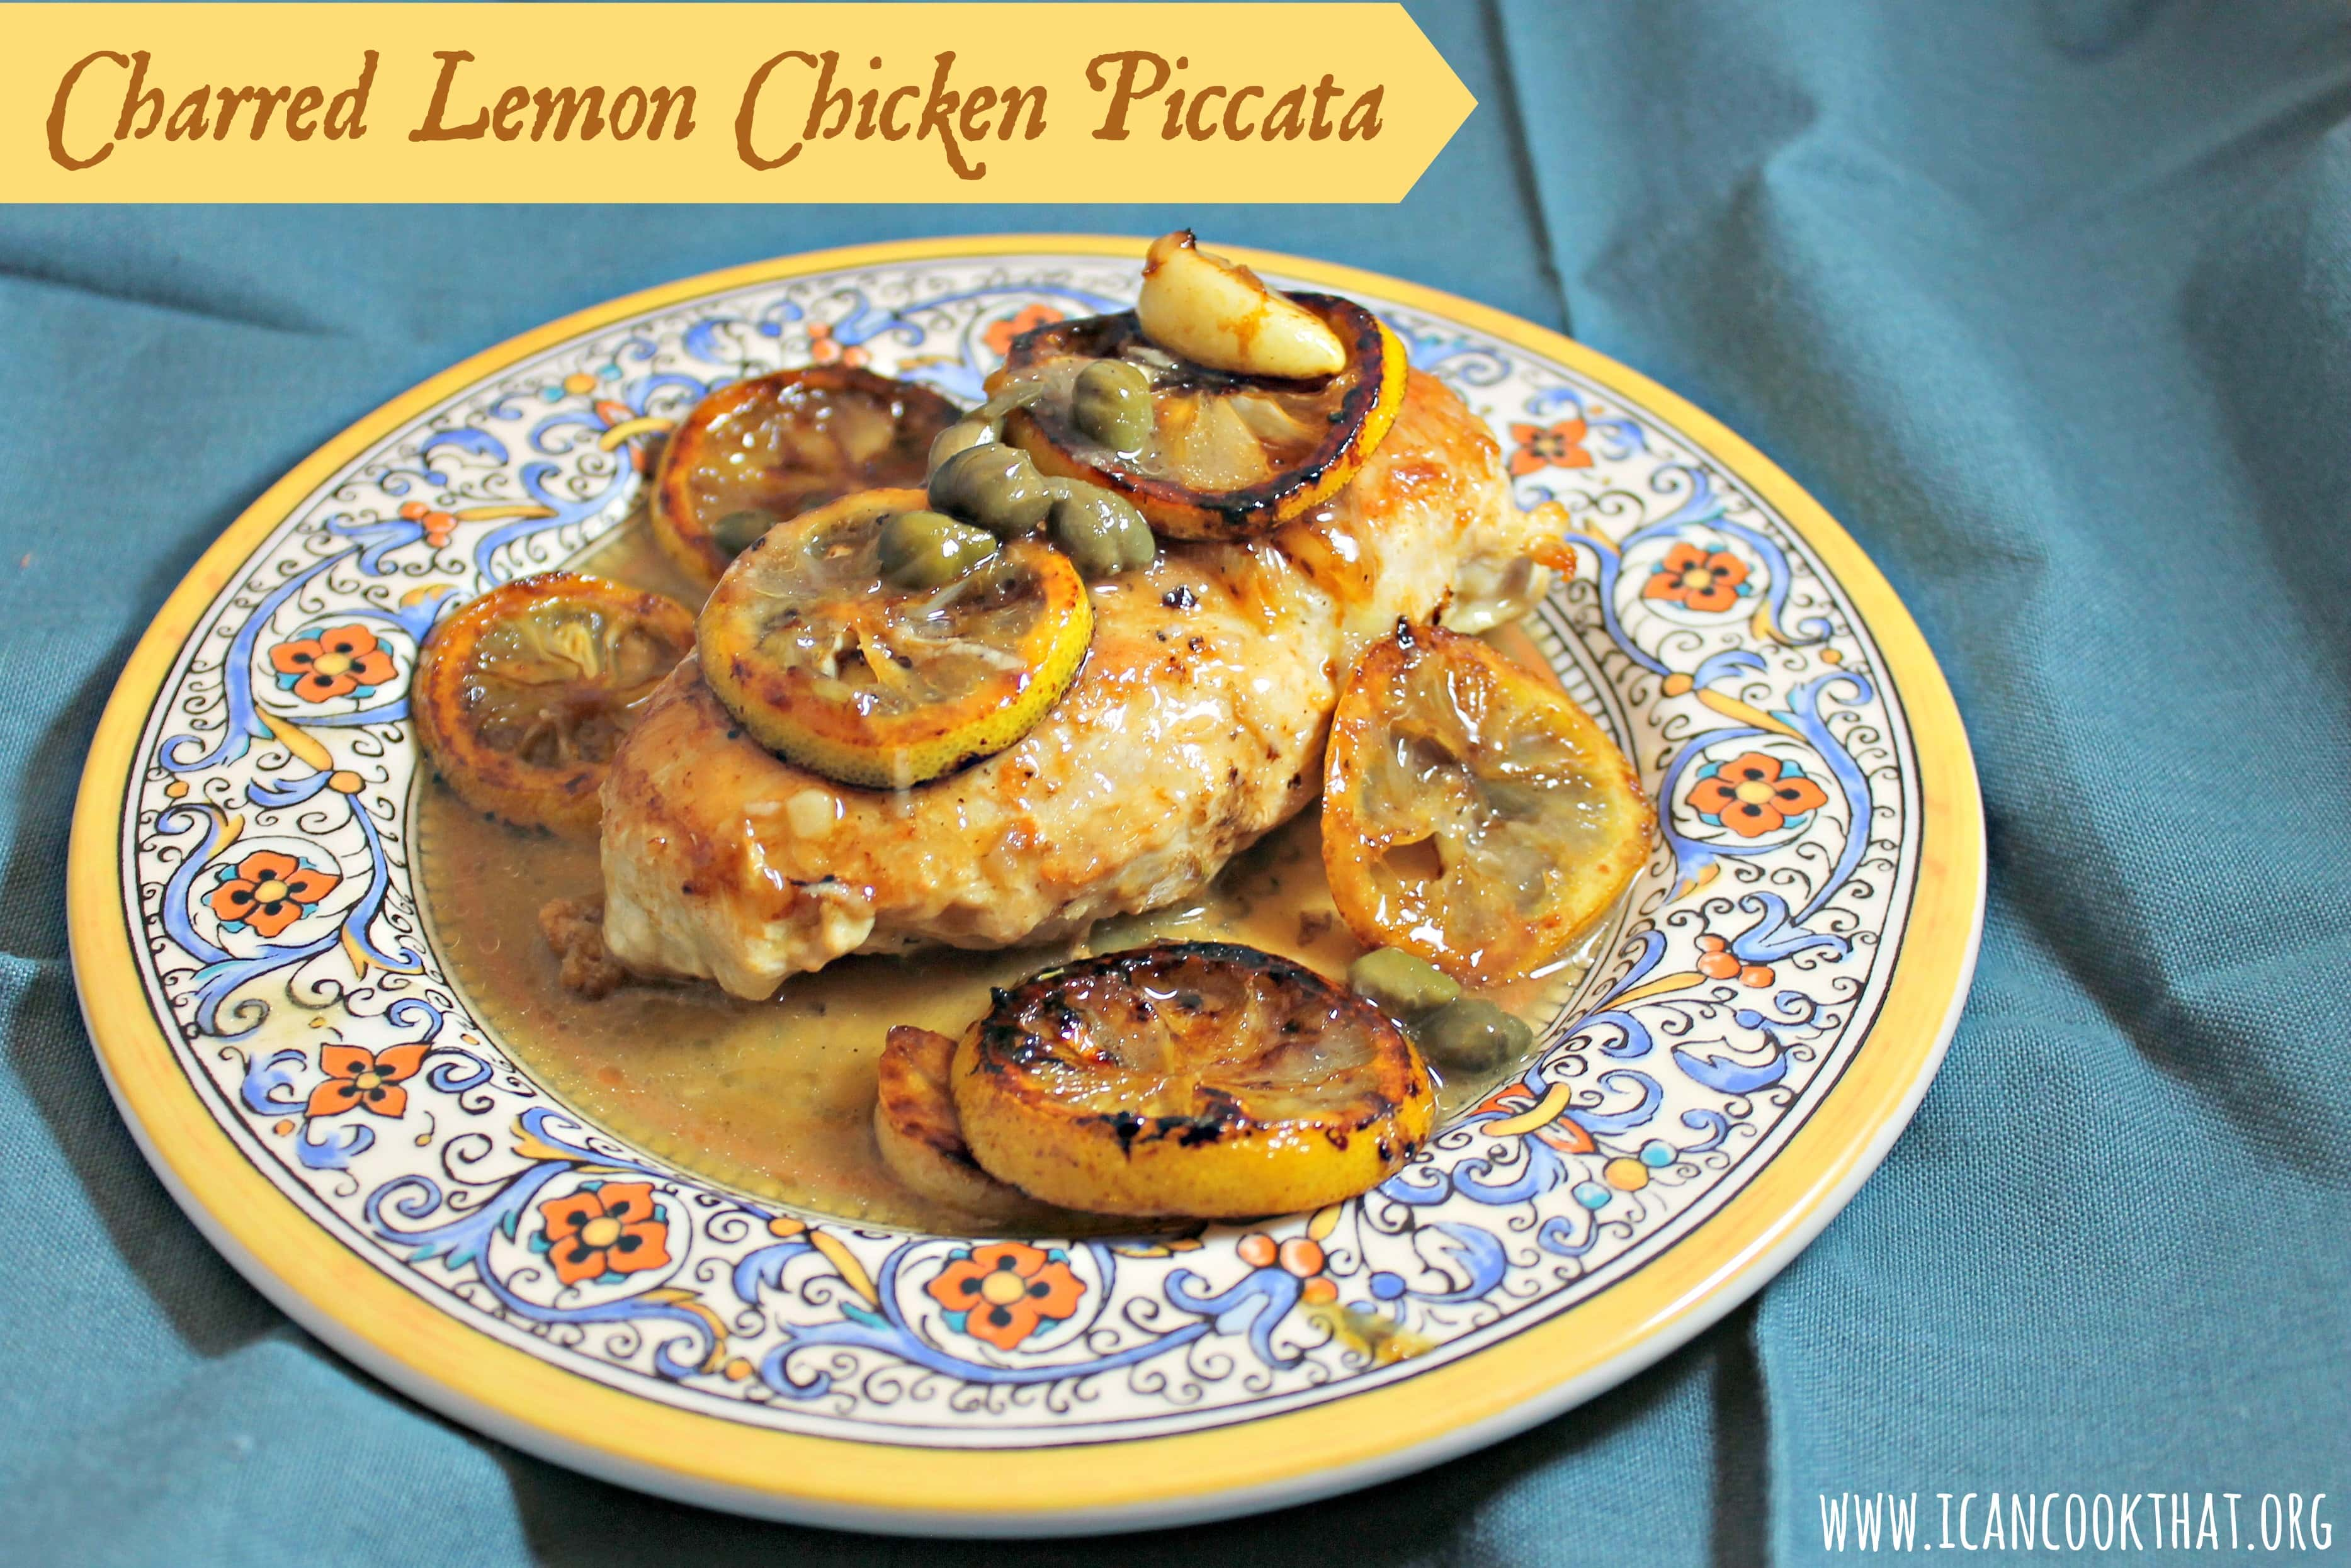 Charred lemon chicken piccata recipe i can cook that forumfinder Gallery